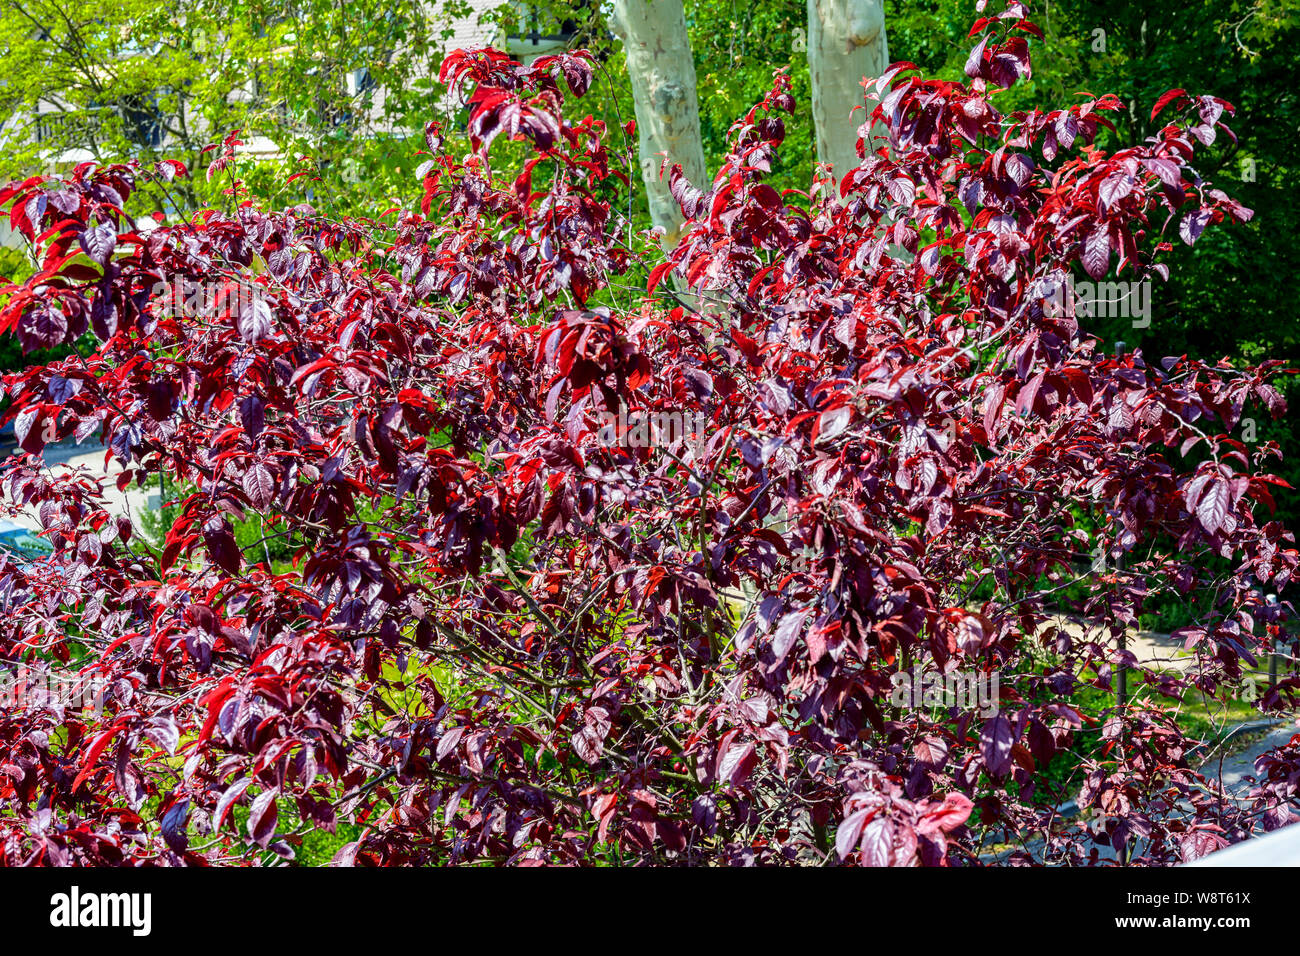 Sargent's cherry tree, Prunus Sargentii, spring foliage, Alsace, France, Europe, Stock Photo